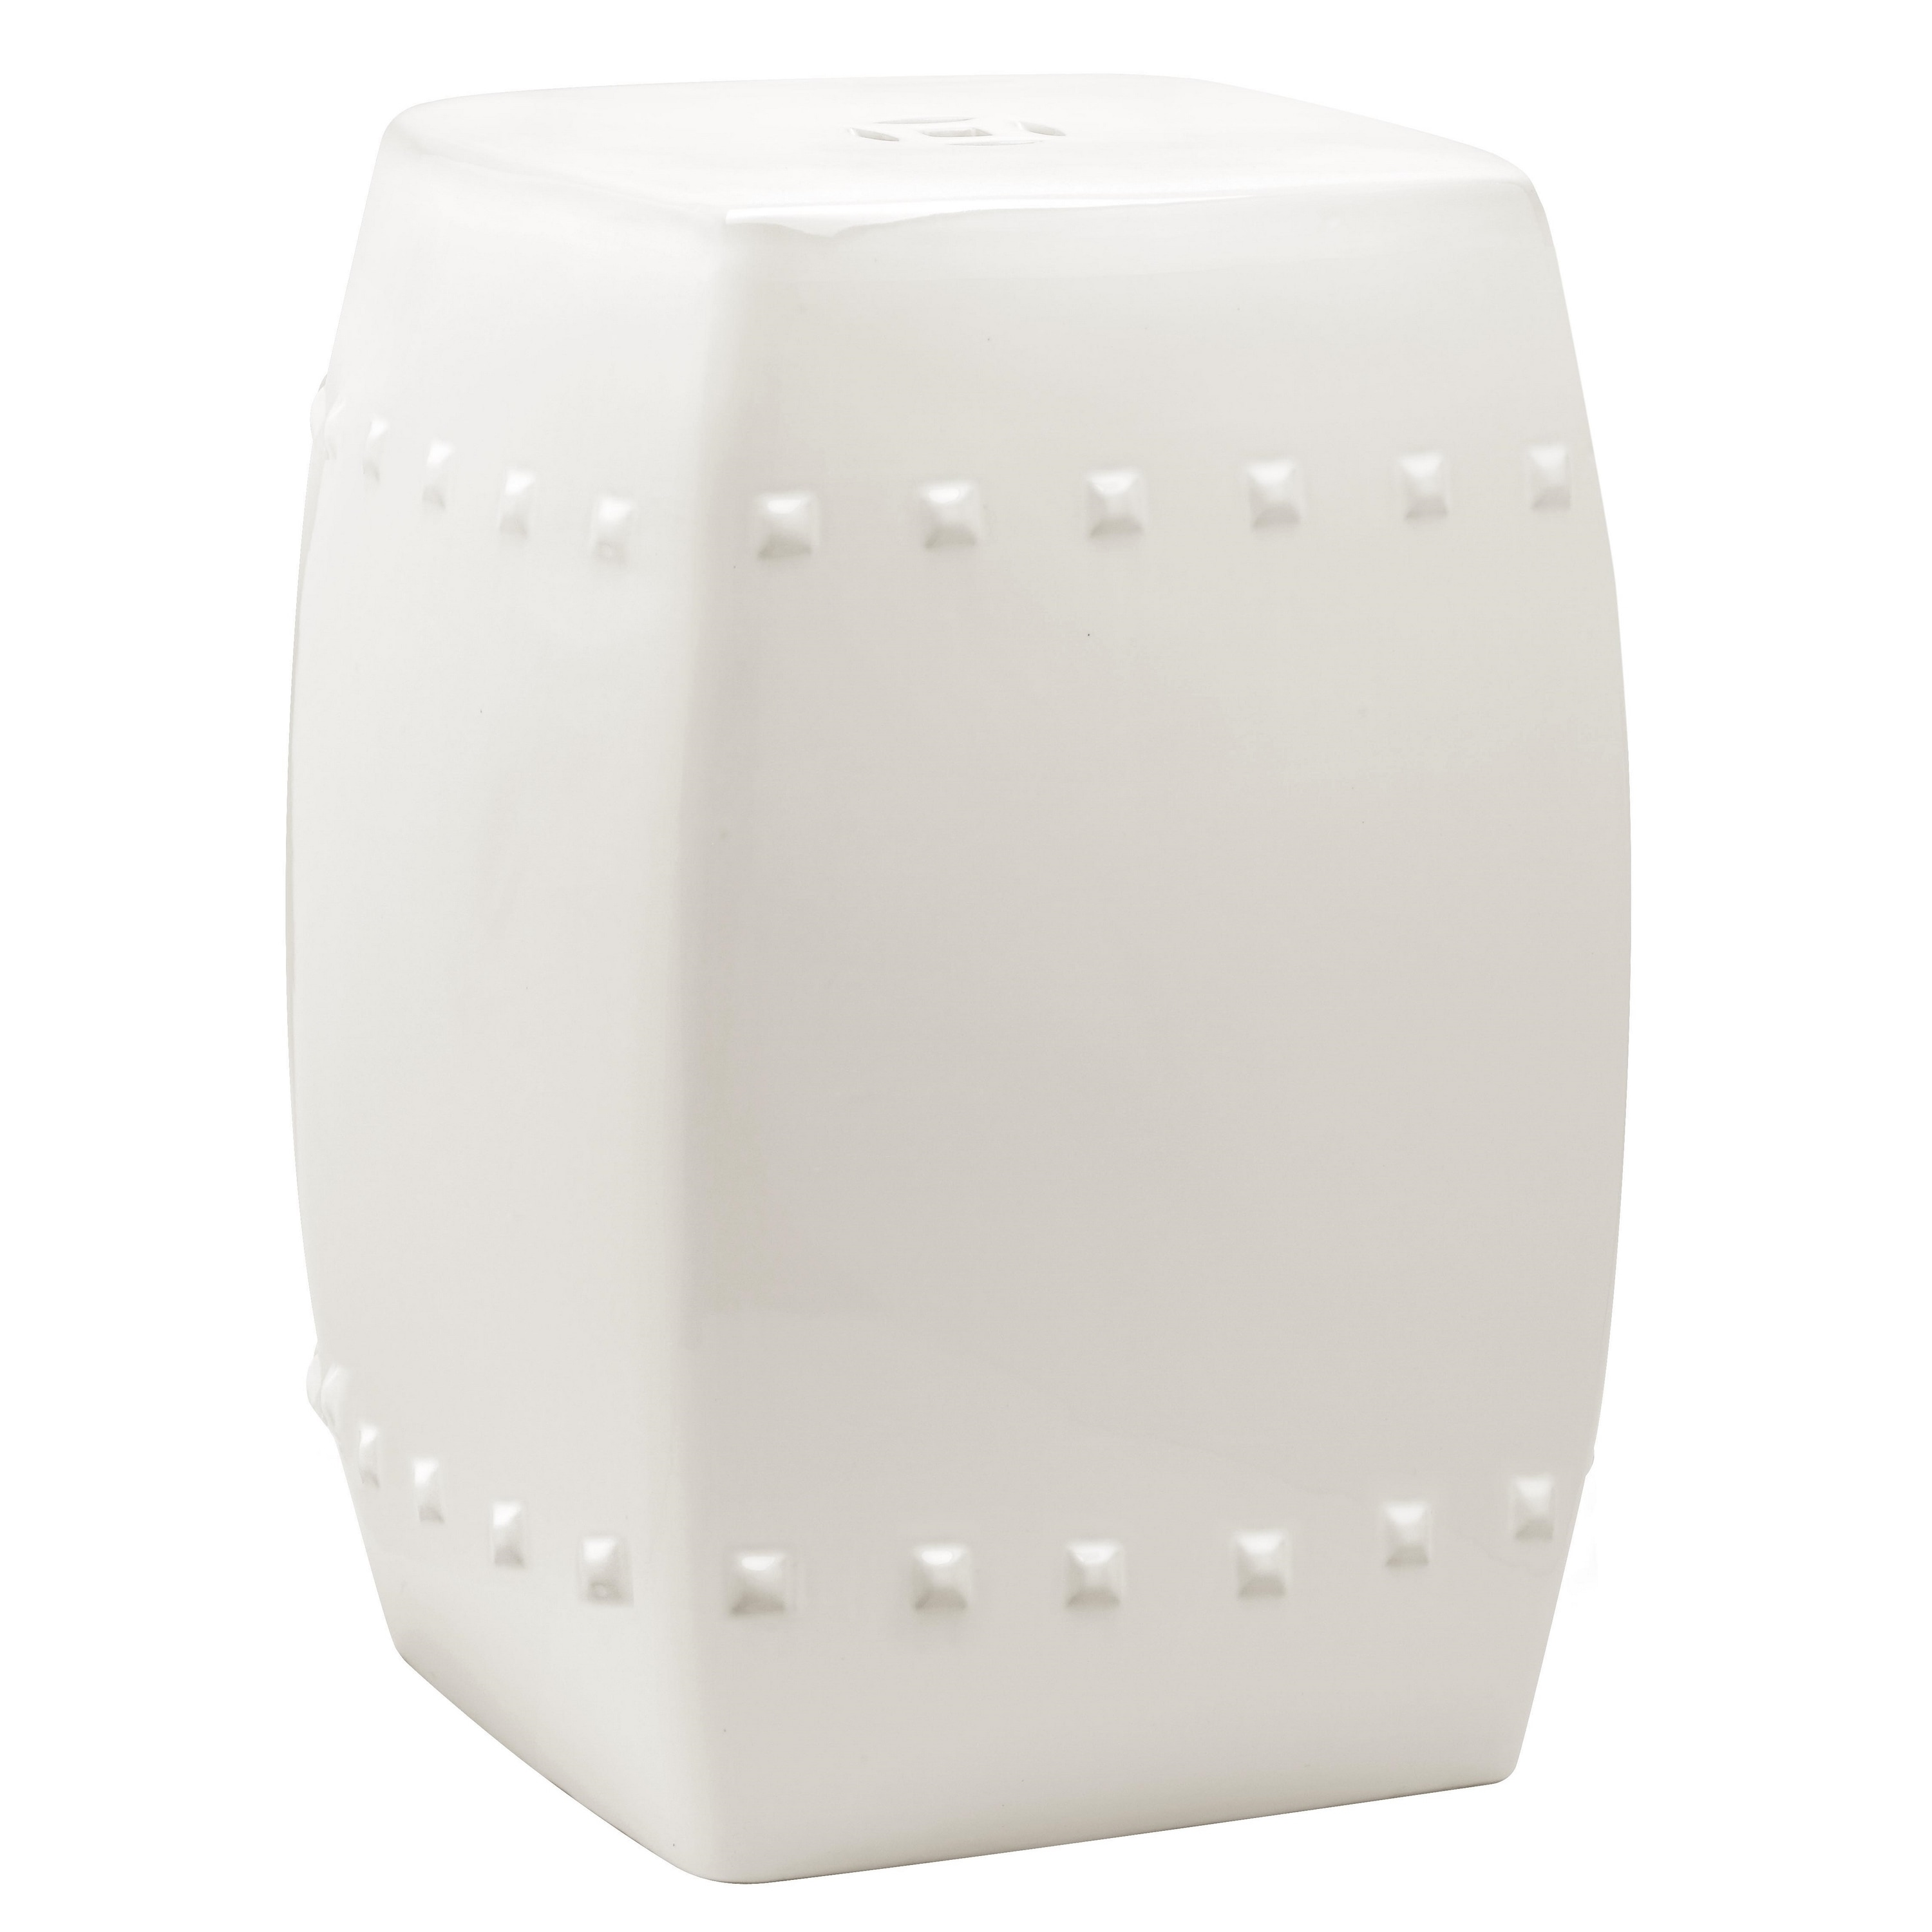 drum stools market garden world drums by lili pin metal punched stool white